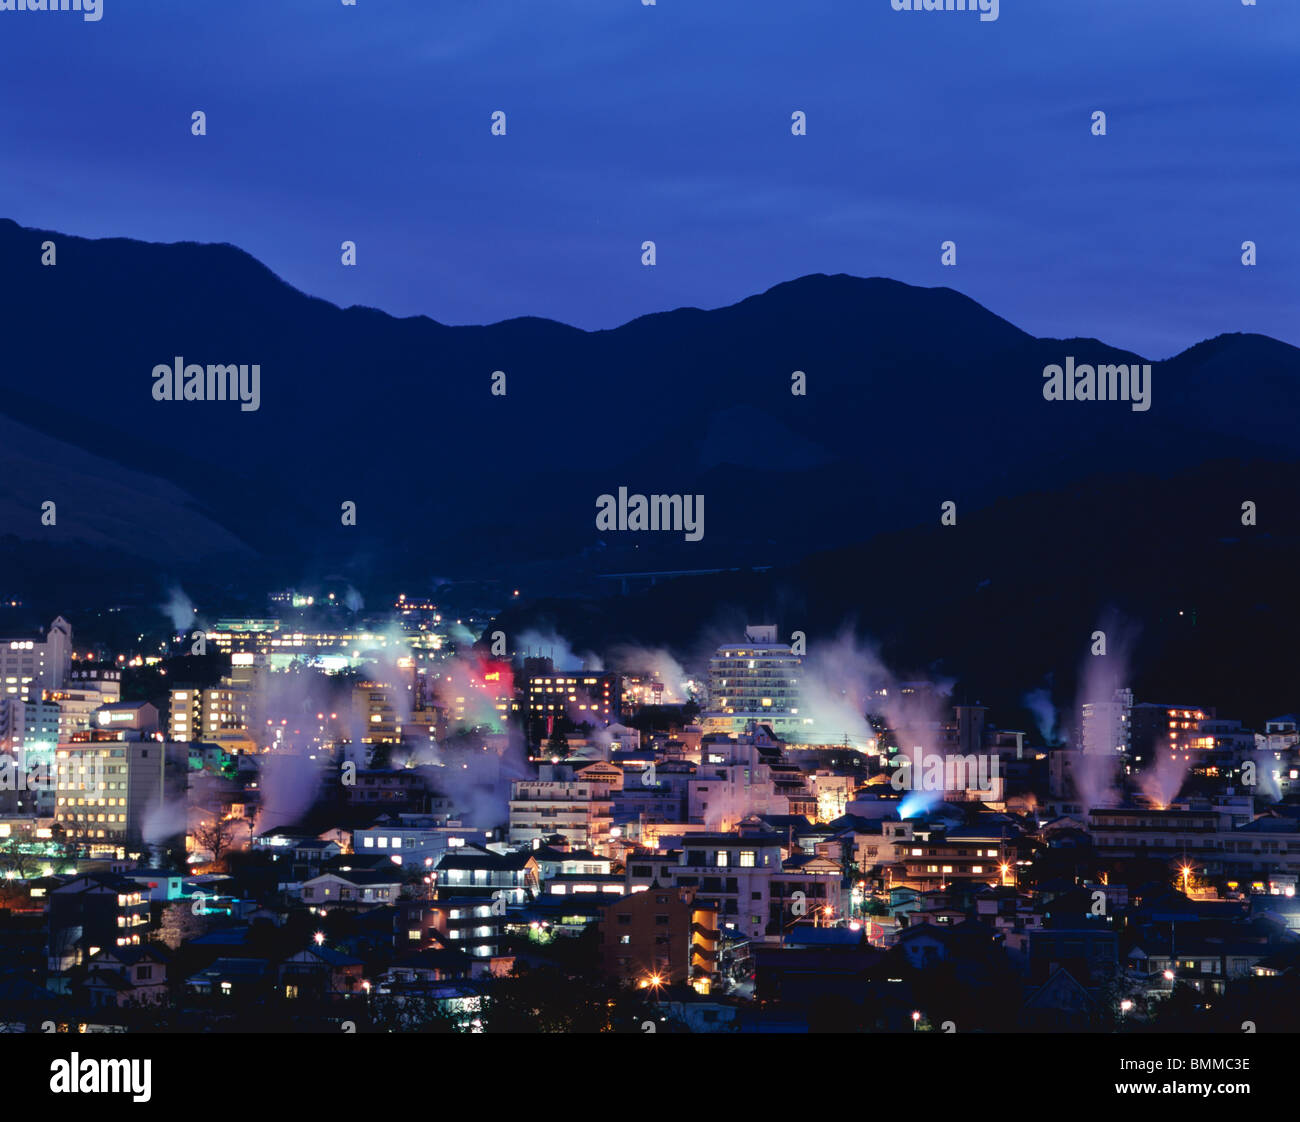 Twilight Beppu City. Steam plumes rise from onsen - Stock Image